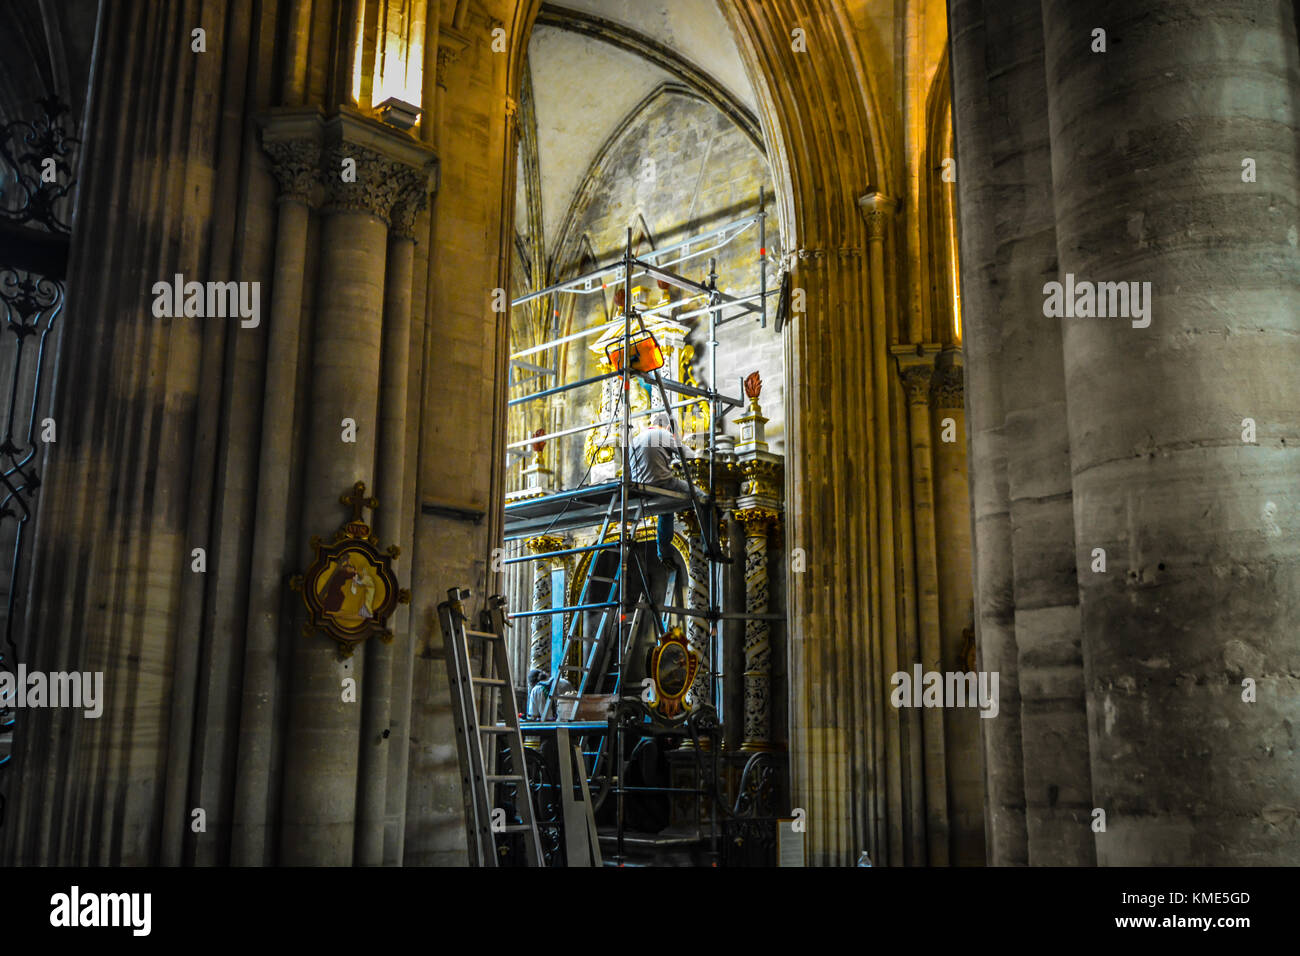 Historian restoring and renovation religious artwork from a scaffolding at the gothic Bayeux Cathedral in France - Stock Image